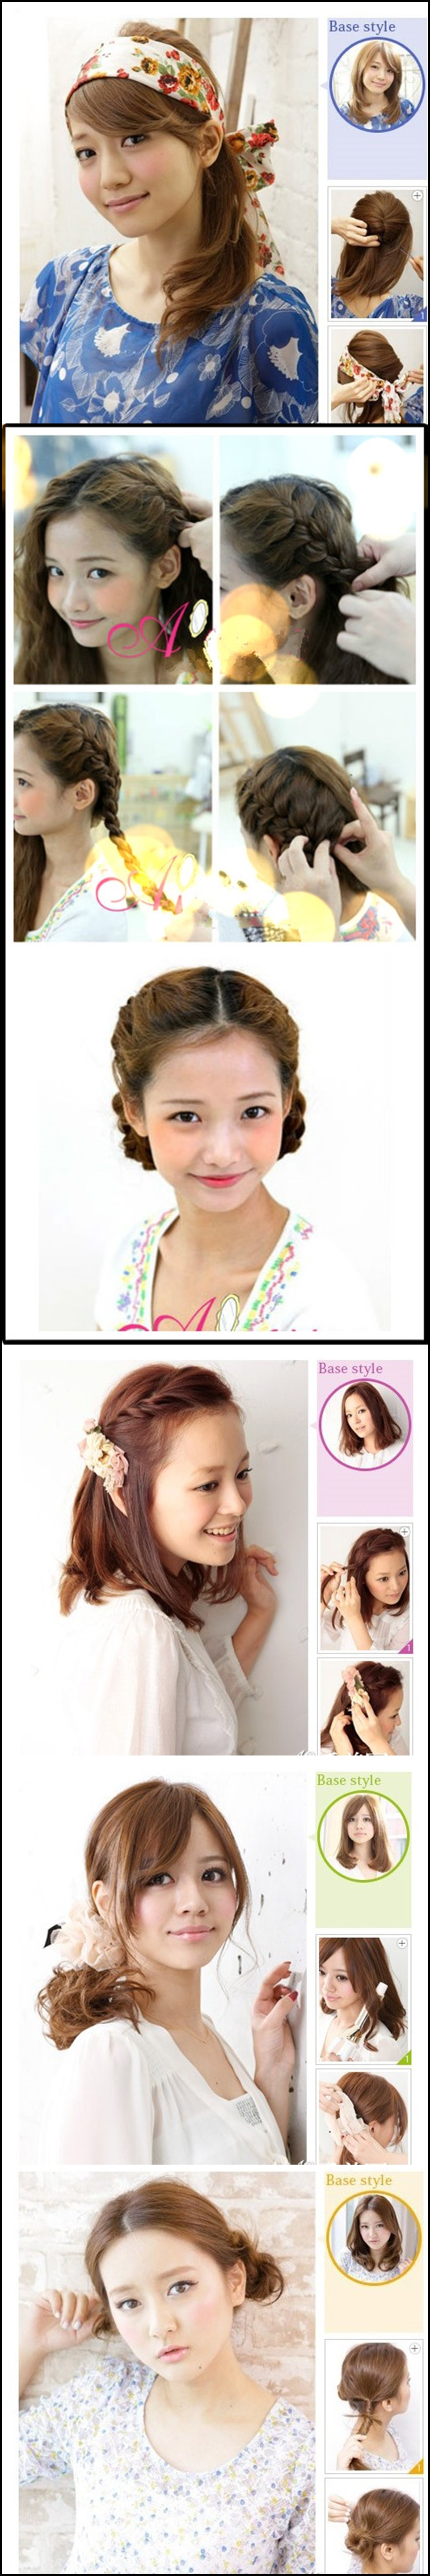 Korea hairstyle m1 Wonderful DIY 5 Korea hairstyles